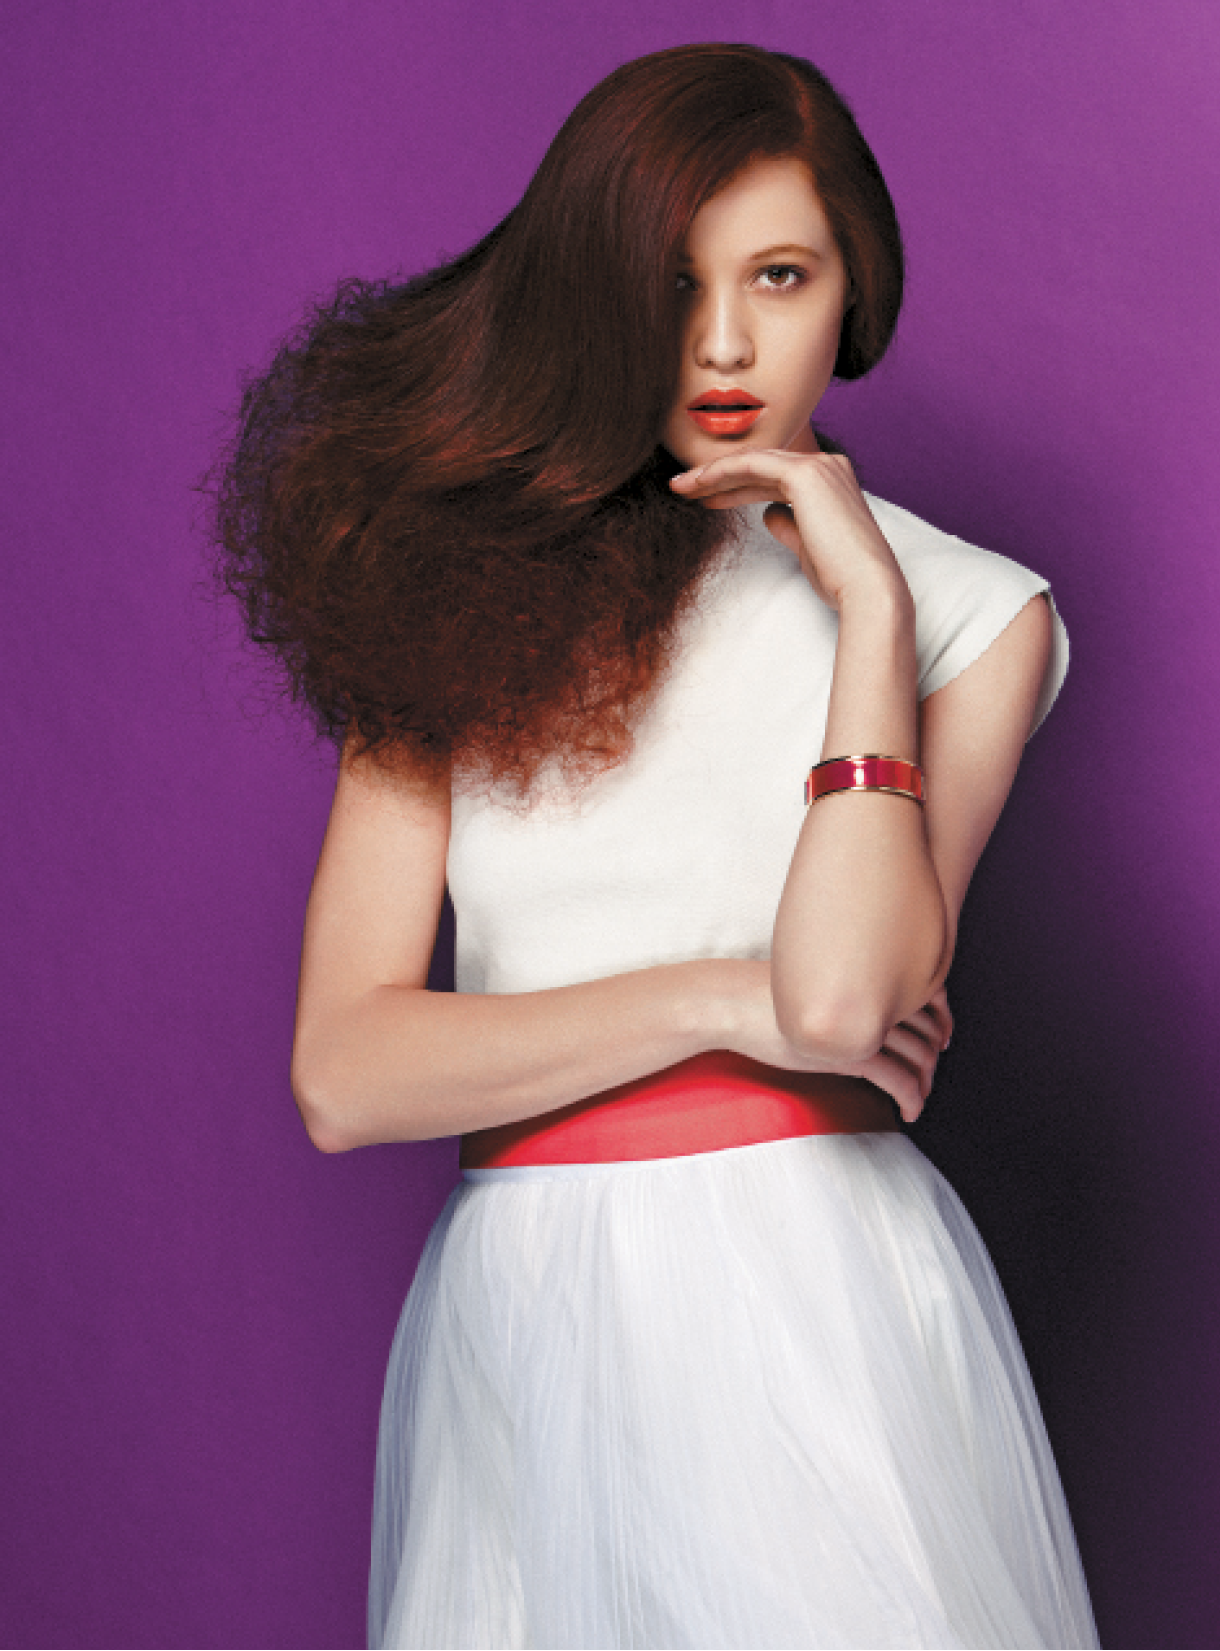 To achieve this tulle-inspired style, Roche prepped hair by blow-drying with Lustrous Volumizer Bodifying Glaze and set it from the nape down by winding hair around a large hairpin, using a figure-eight pattern. She set the top area with a 1-inch iron off base, and then brushed out the underneath section to create the tulle look. After brushing the top section smooth over the tulle, she sprayed hair with Strengthening Control Zero Dulling Hairspray, molding the underneath portion with her hands to create a stronger shape.